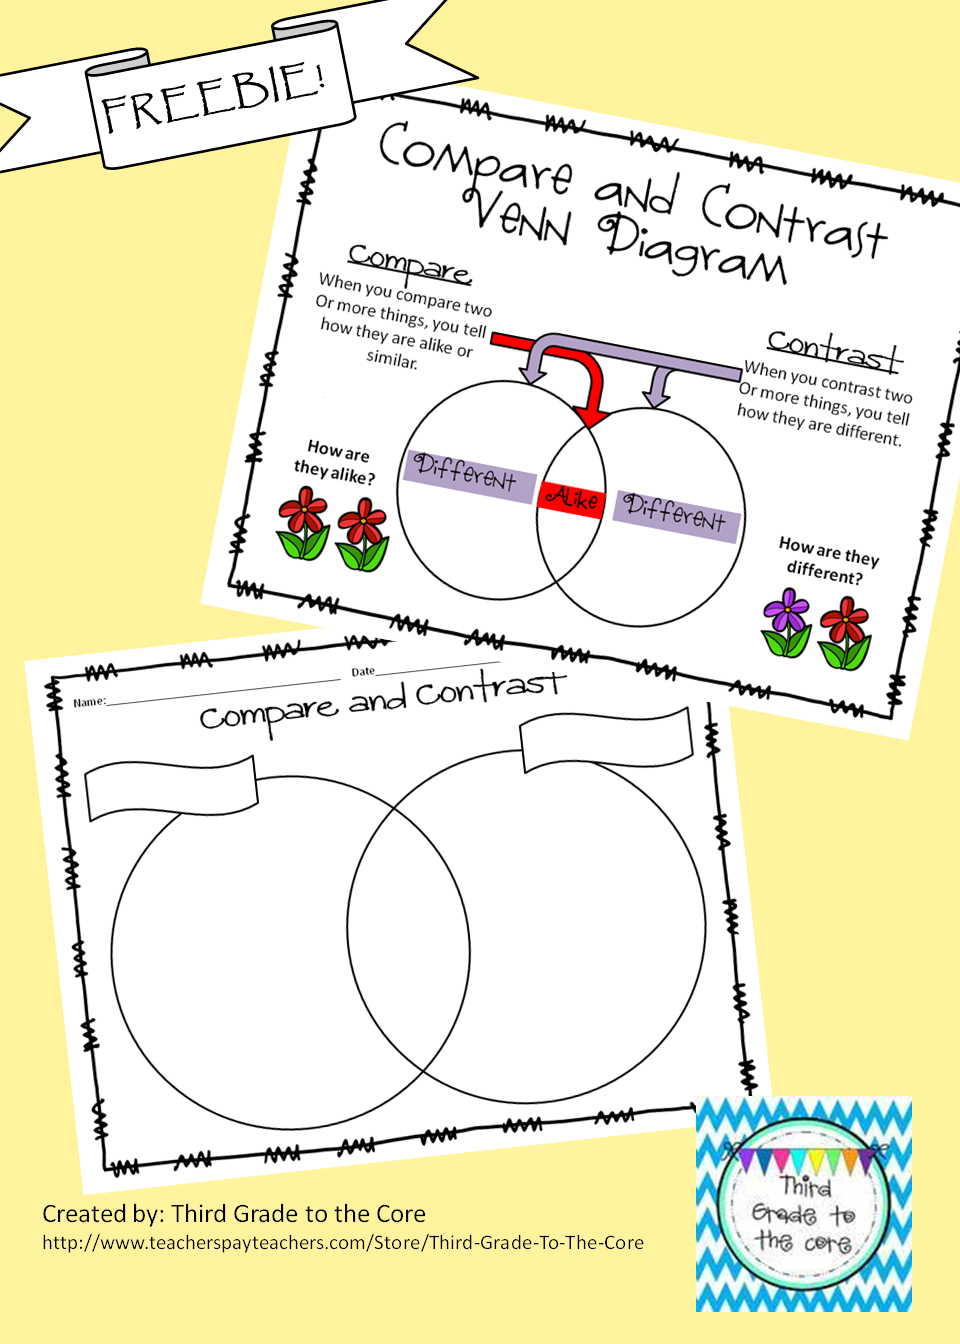 Freebie compare and contrast venn diagram with classroom poster compare and contrast venn diagram with classroom poster pooptronica